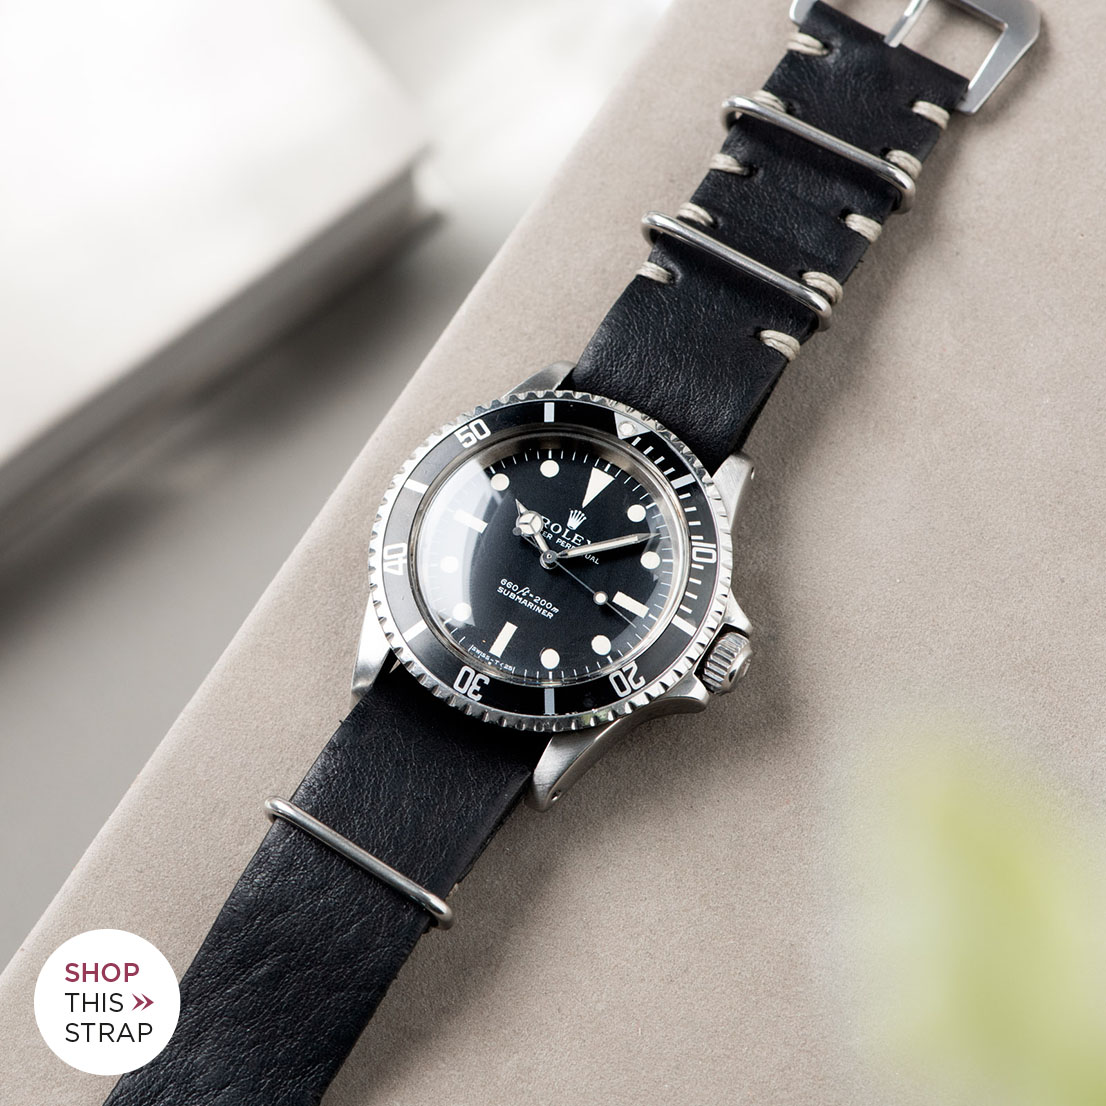 Bulang and Sons_Strap Guide_Rolex 5513 Submariner_BLACK NATO LEATHER WATCH STRAP